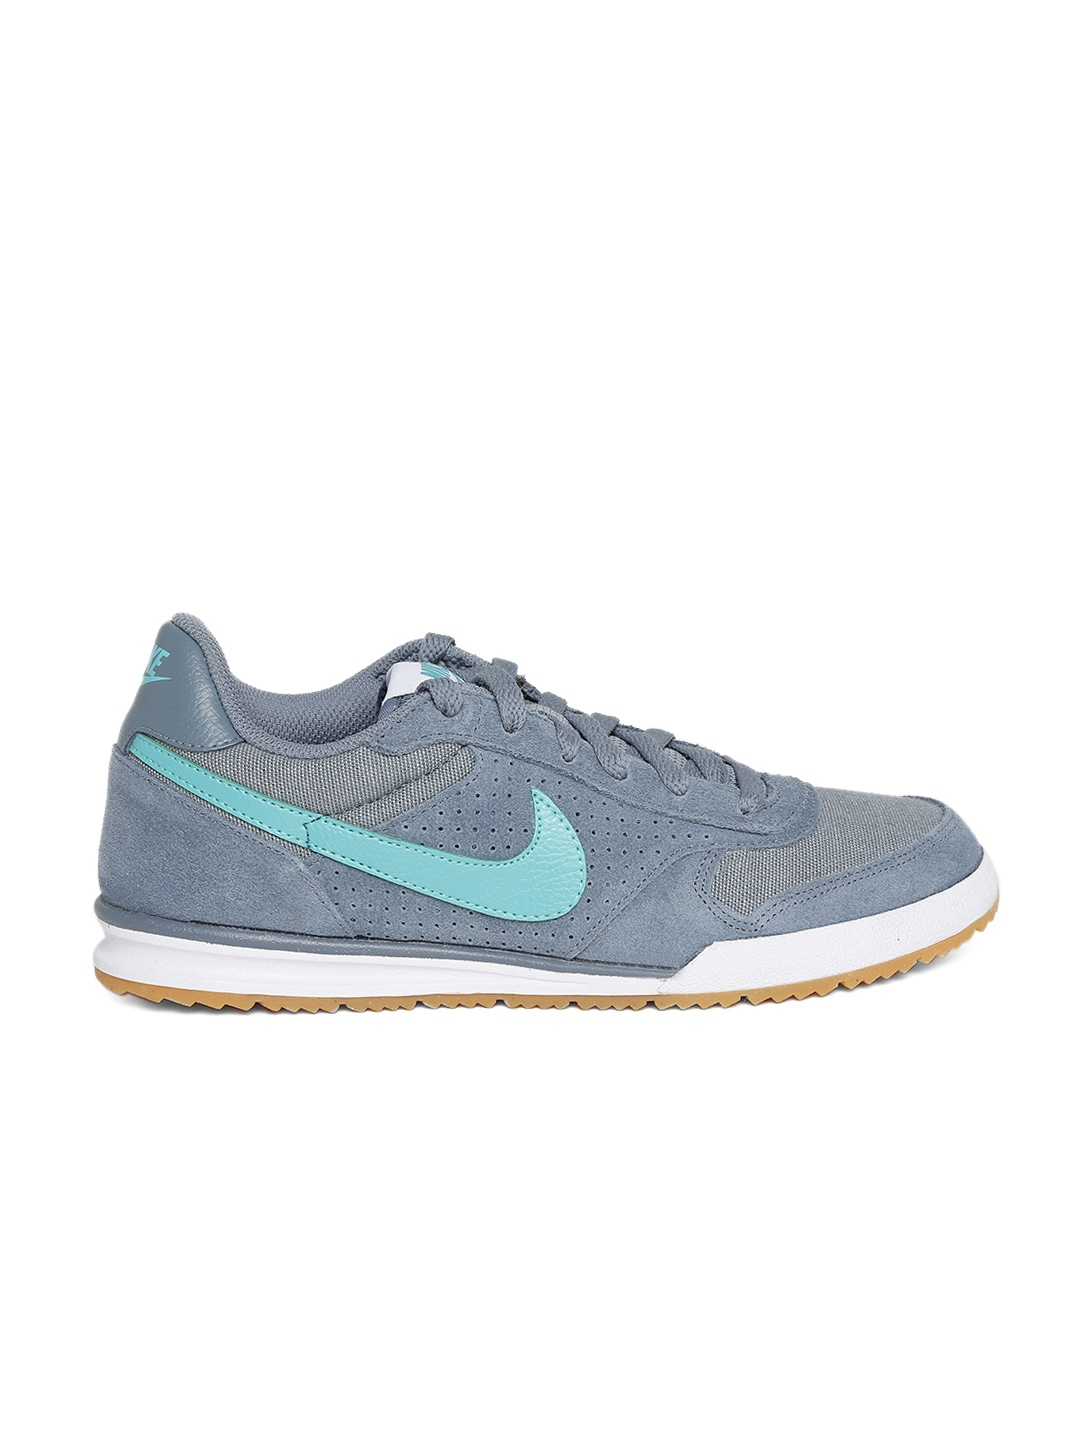 myntra nike blue field trainer casual shoes 731288